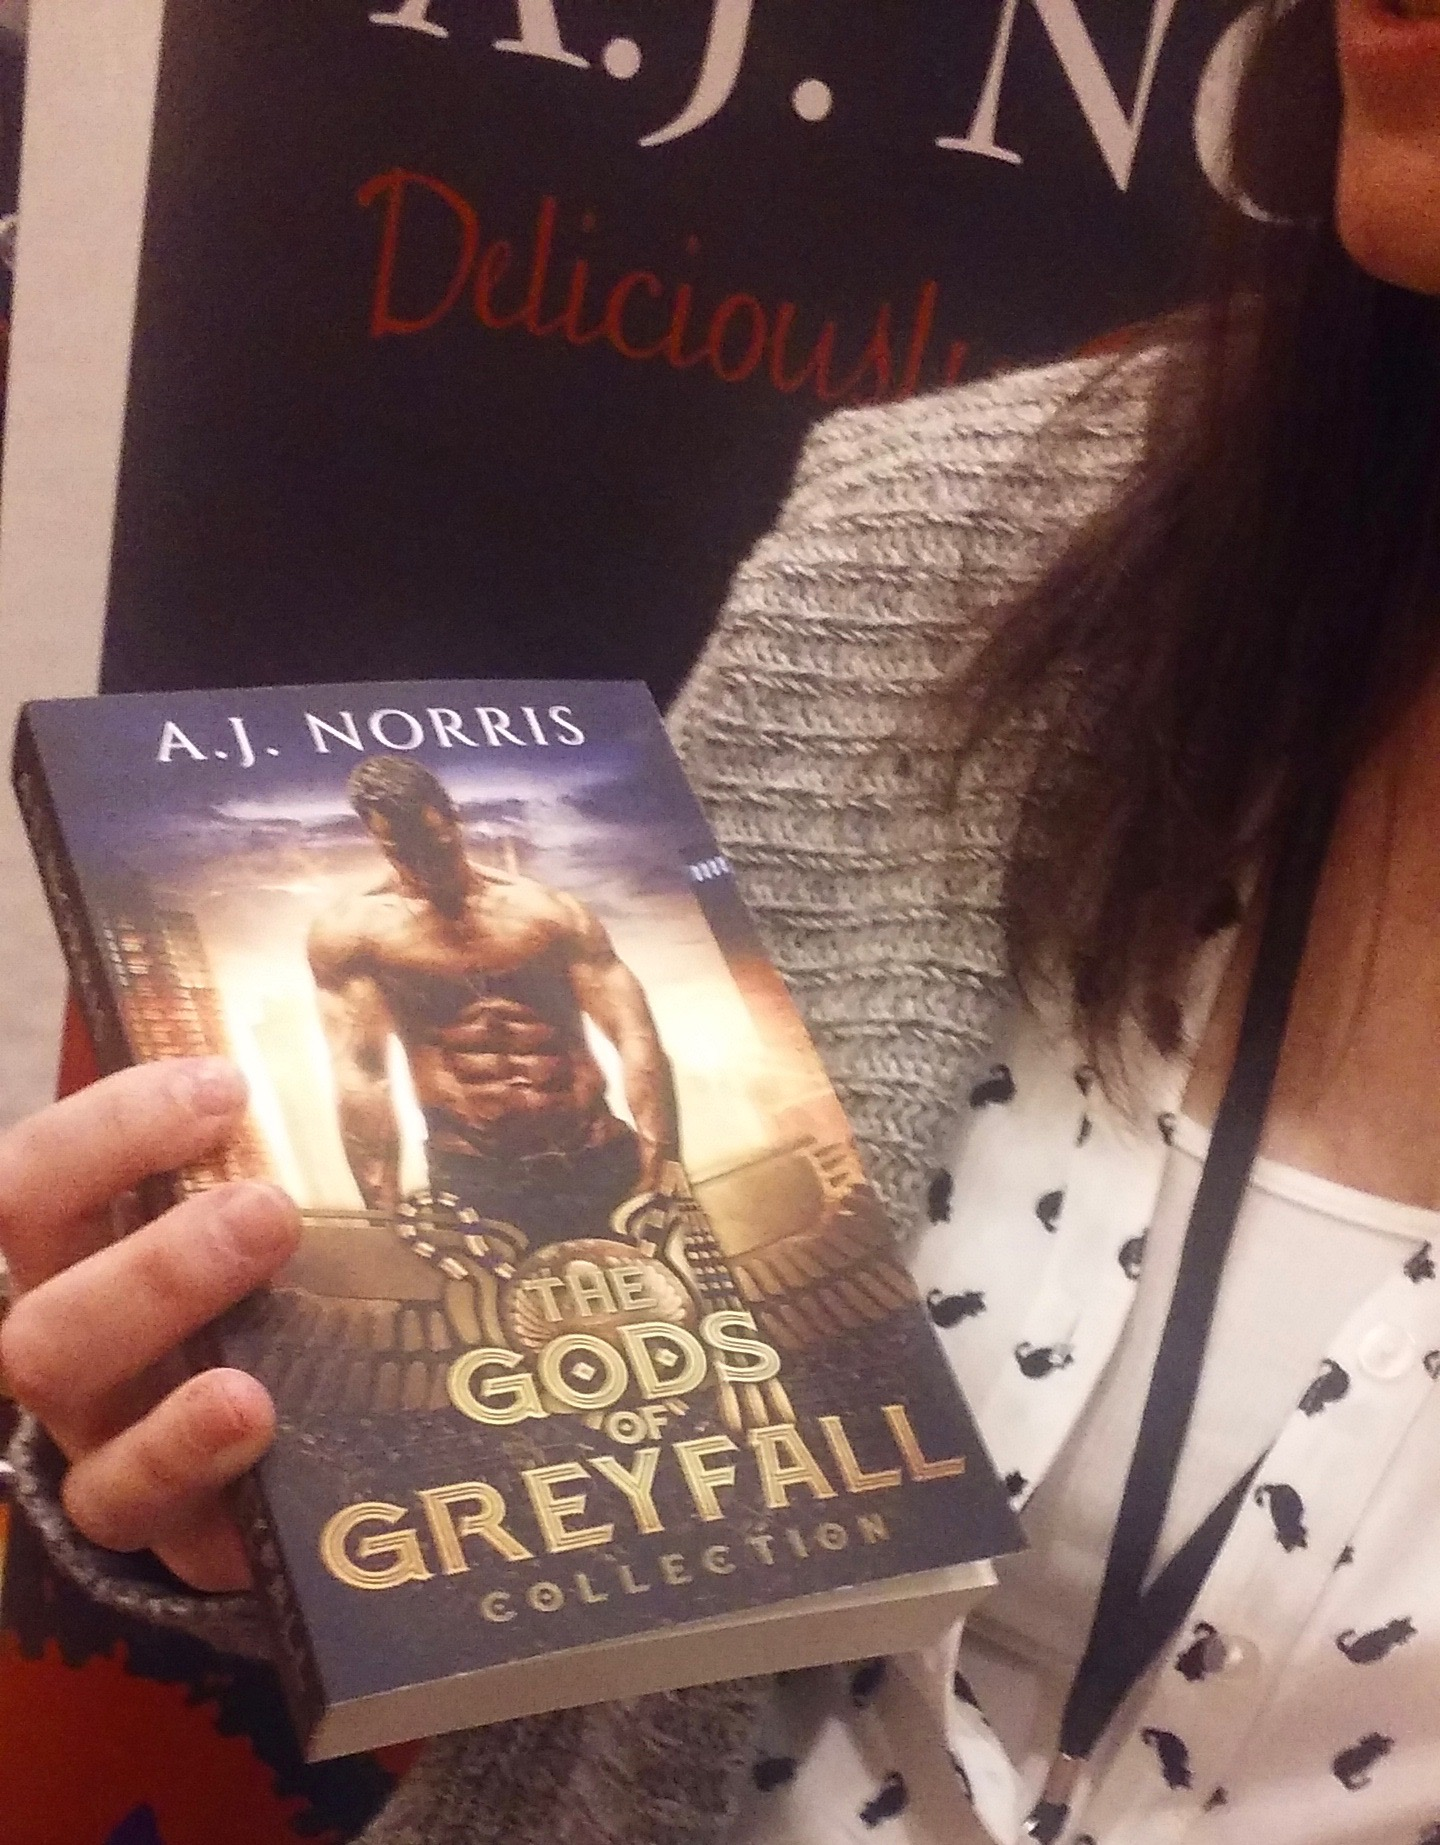 A.J. Norris holds a copy of her newly released The Gods of Greyfall Collection at the 2018 Books in Bourbon Country Author Signing Event in Louisville, Kentucky on March 31st. Check her out on  Goodreads,  too